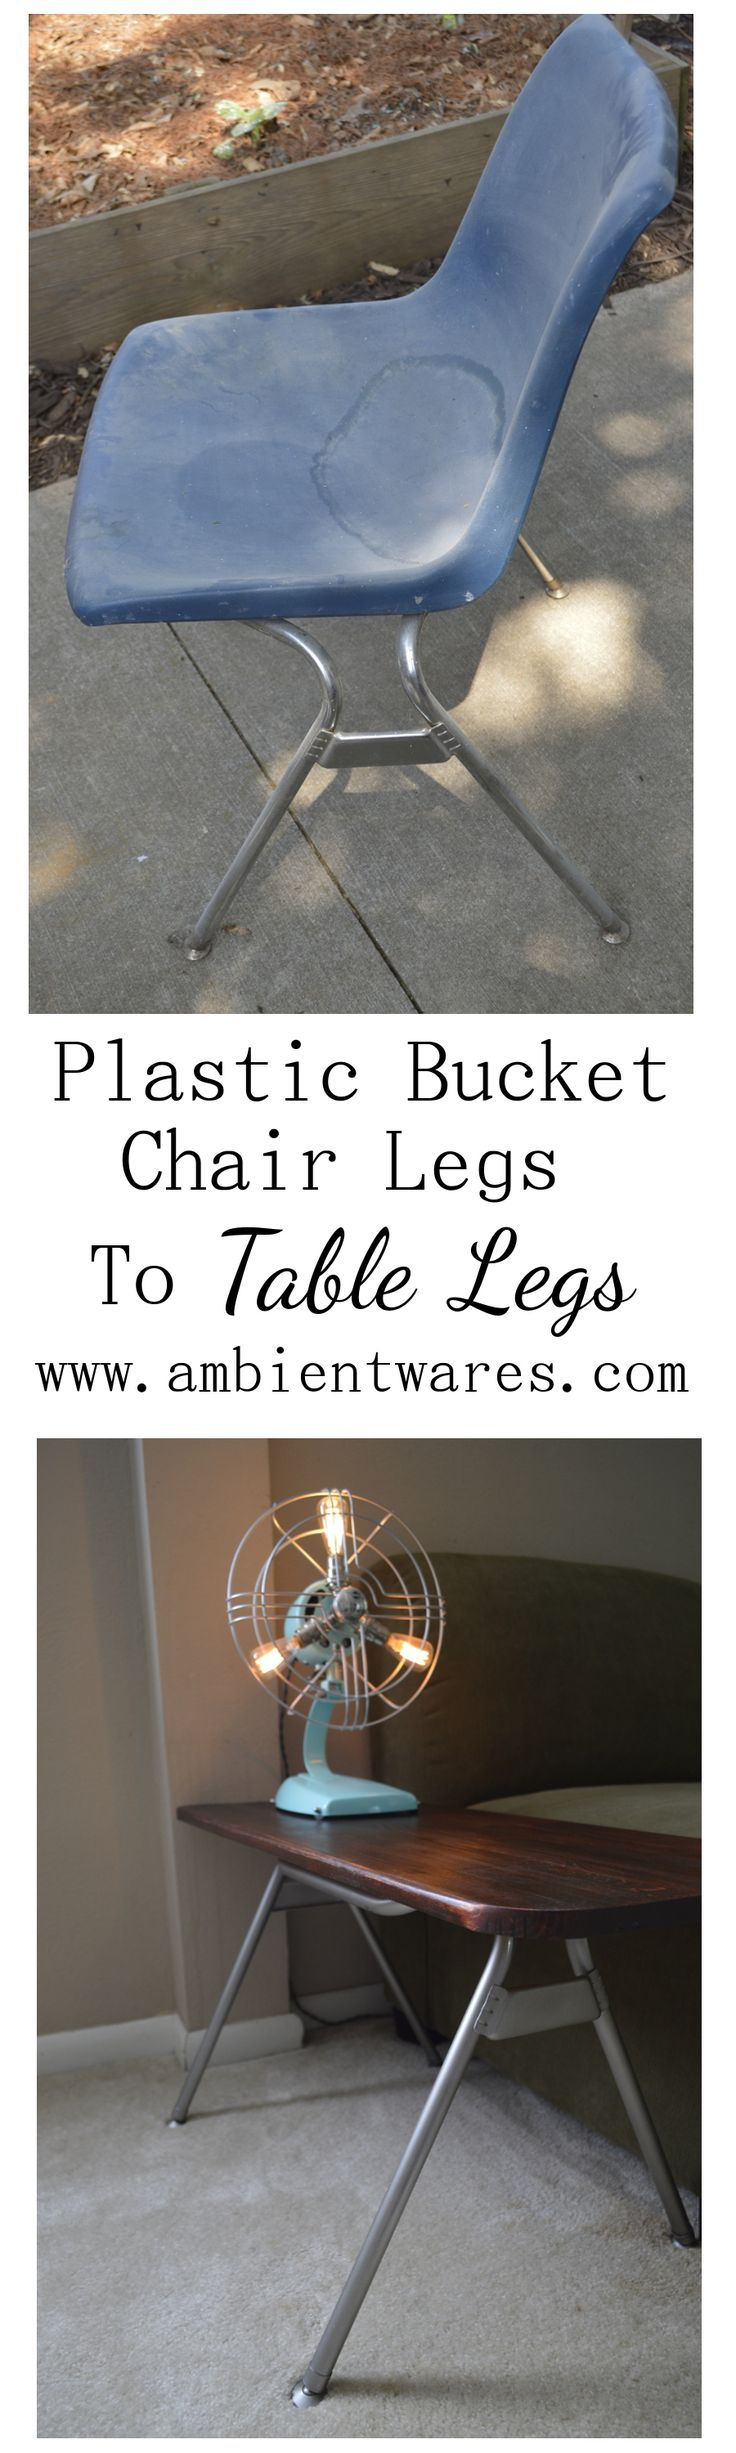 Have you ever thought to use the metal legs from those old plastic bucket chairs and repurpose them into a unique side table? This gal did! ambientwares.com